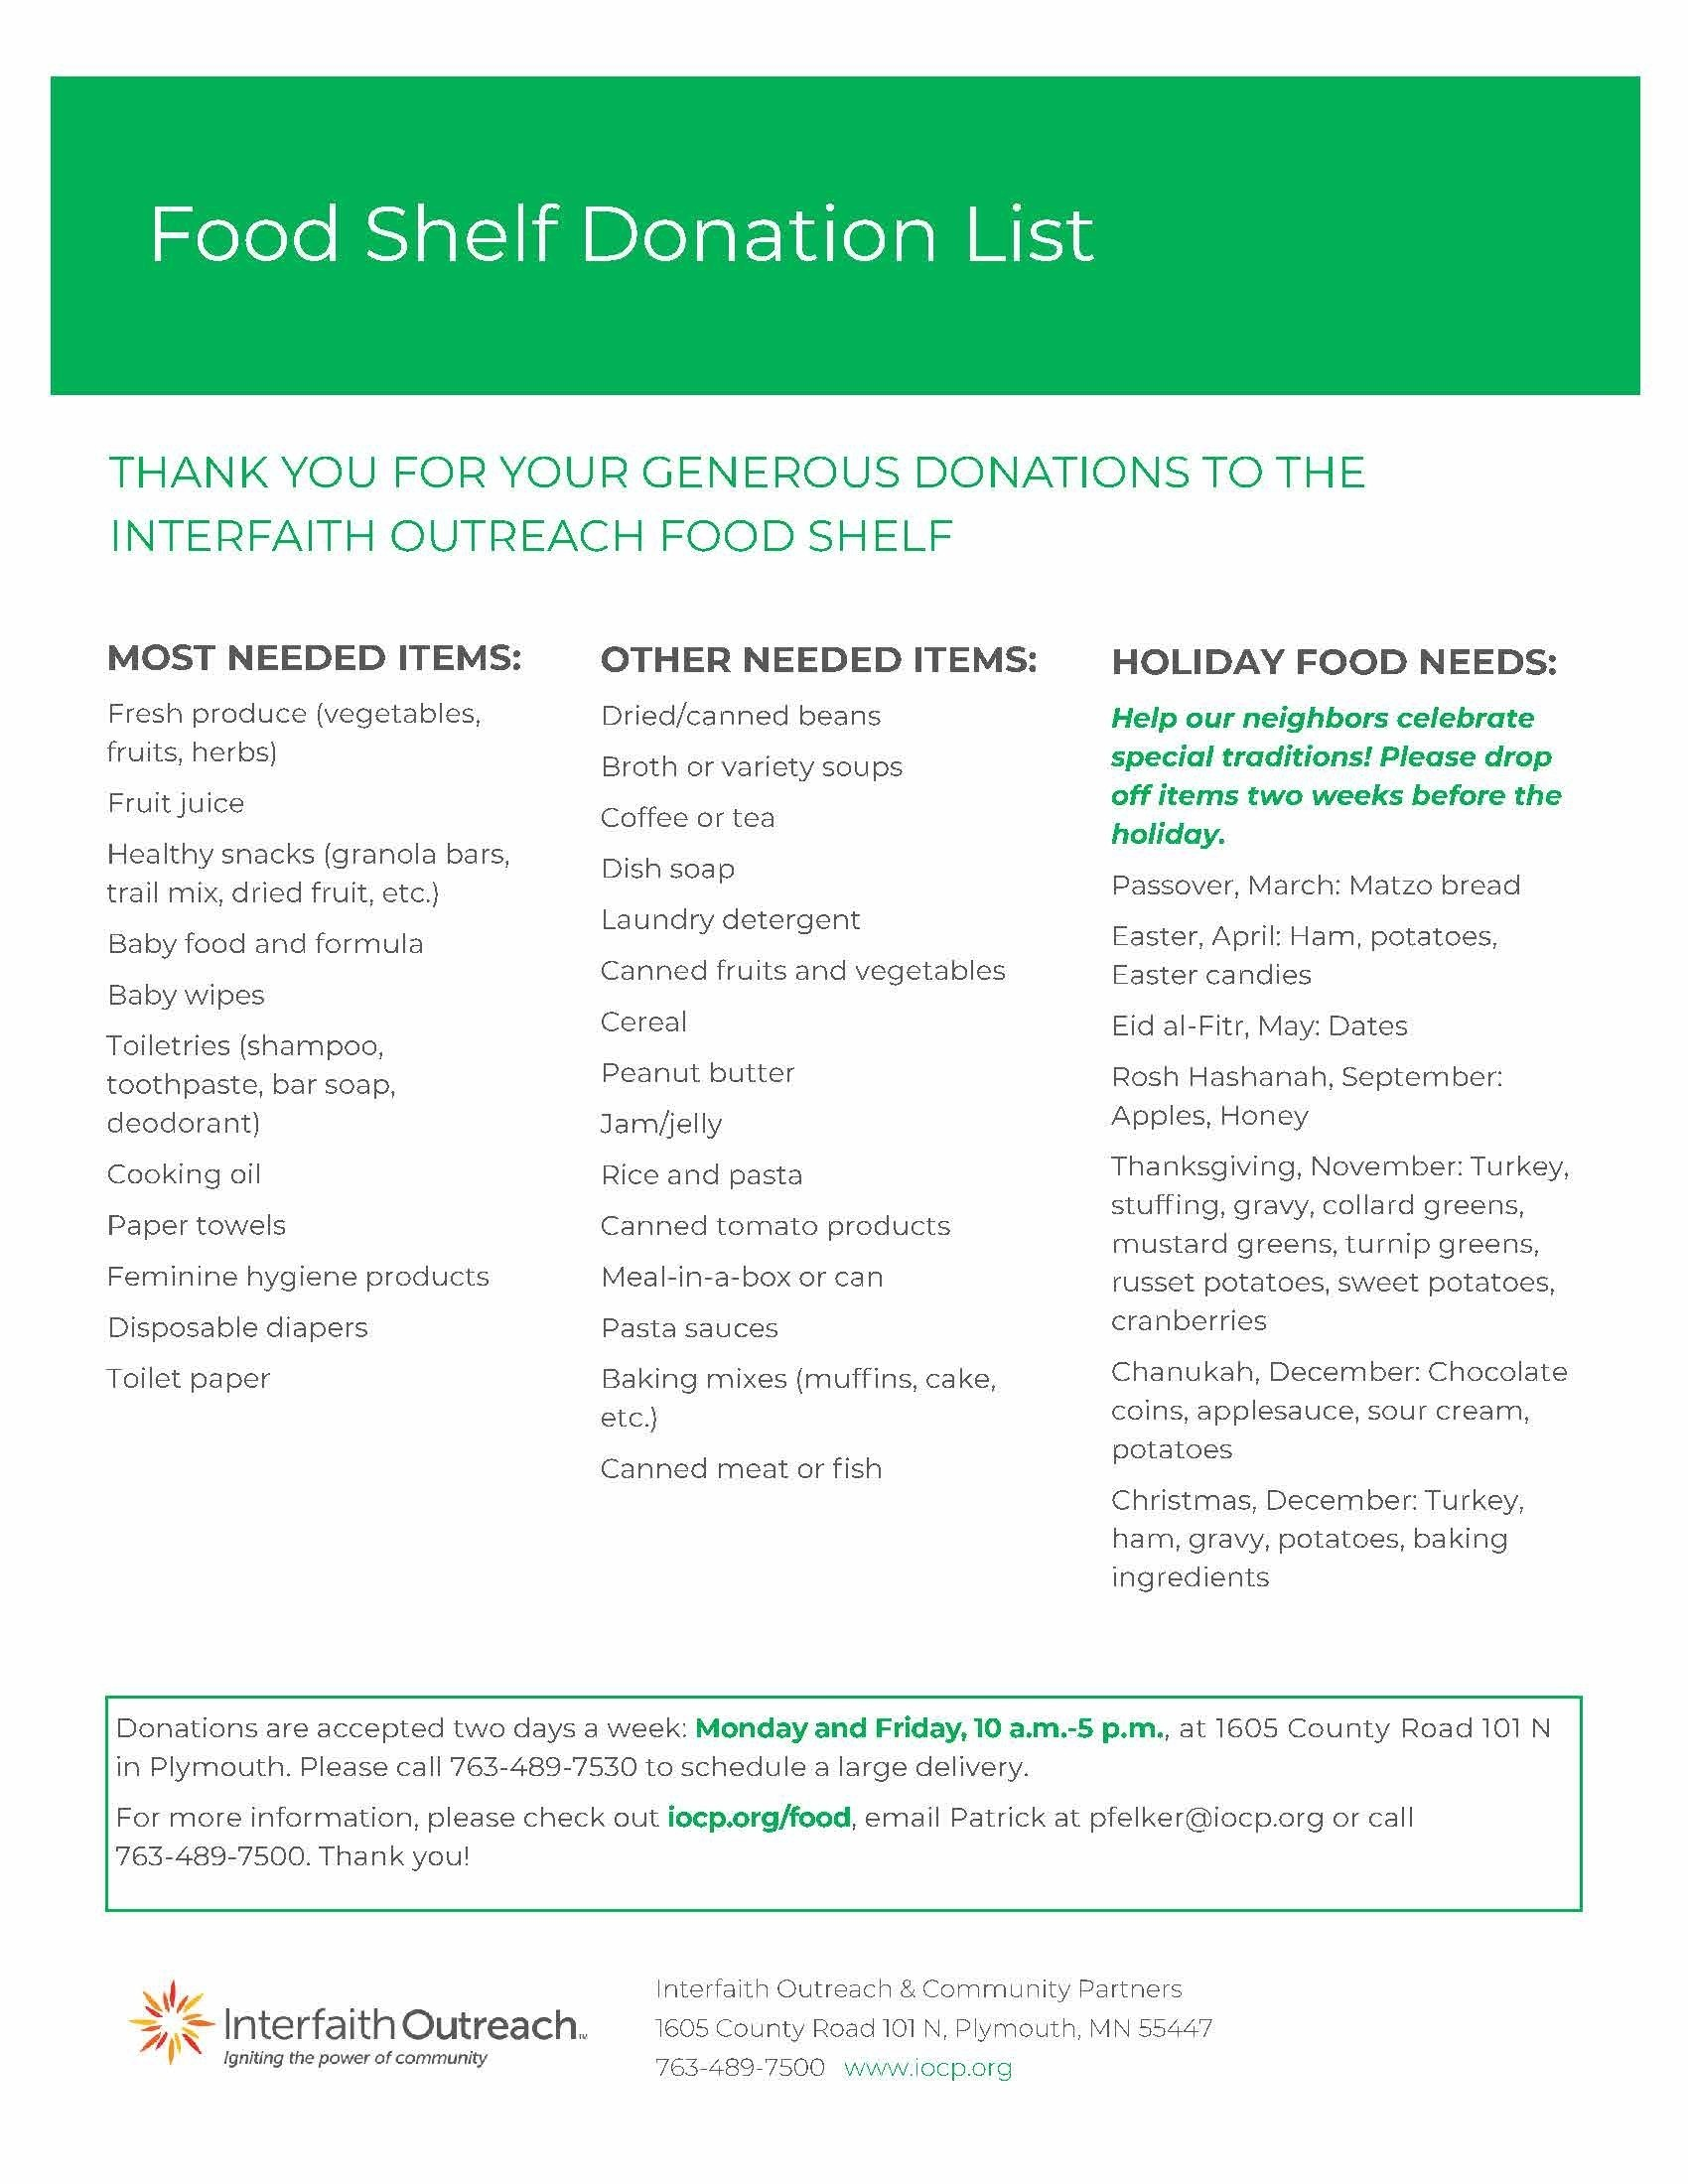 Interfaith Food Shelf Needed Items